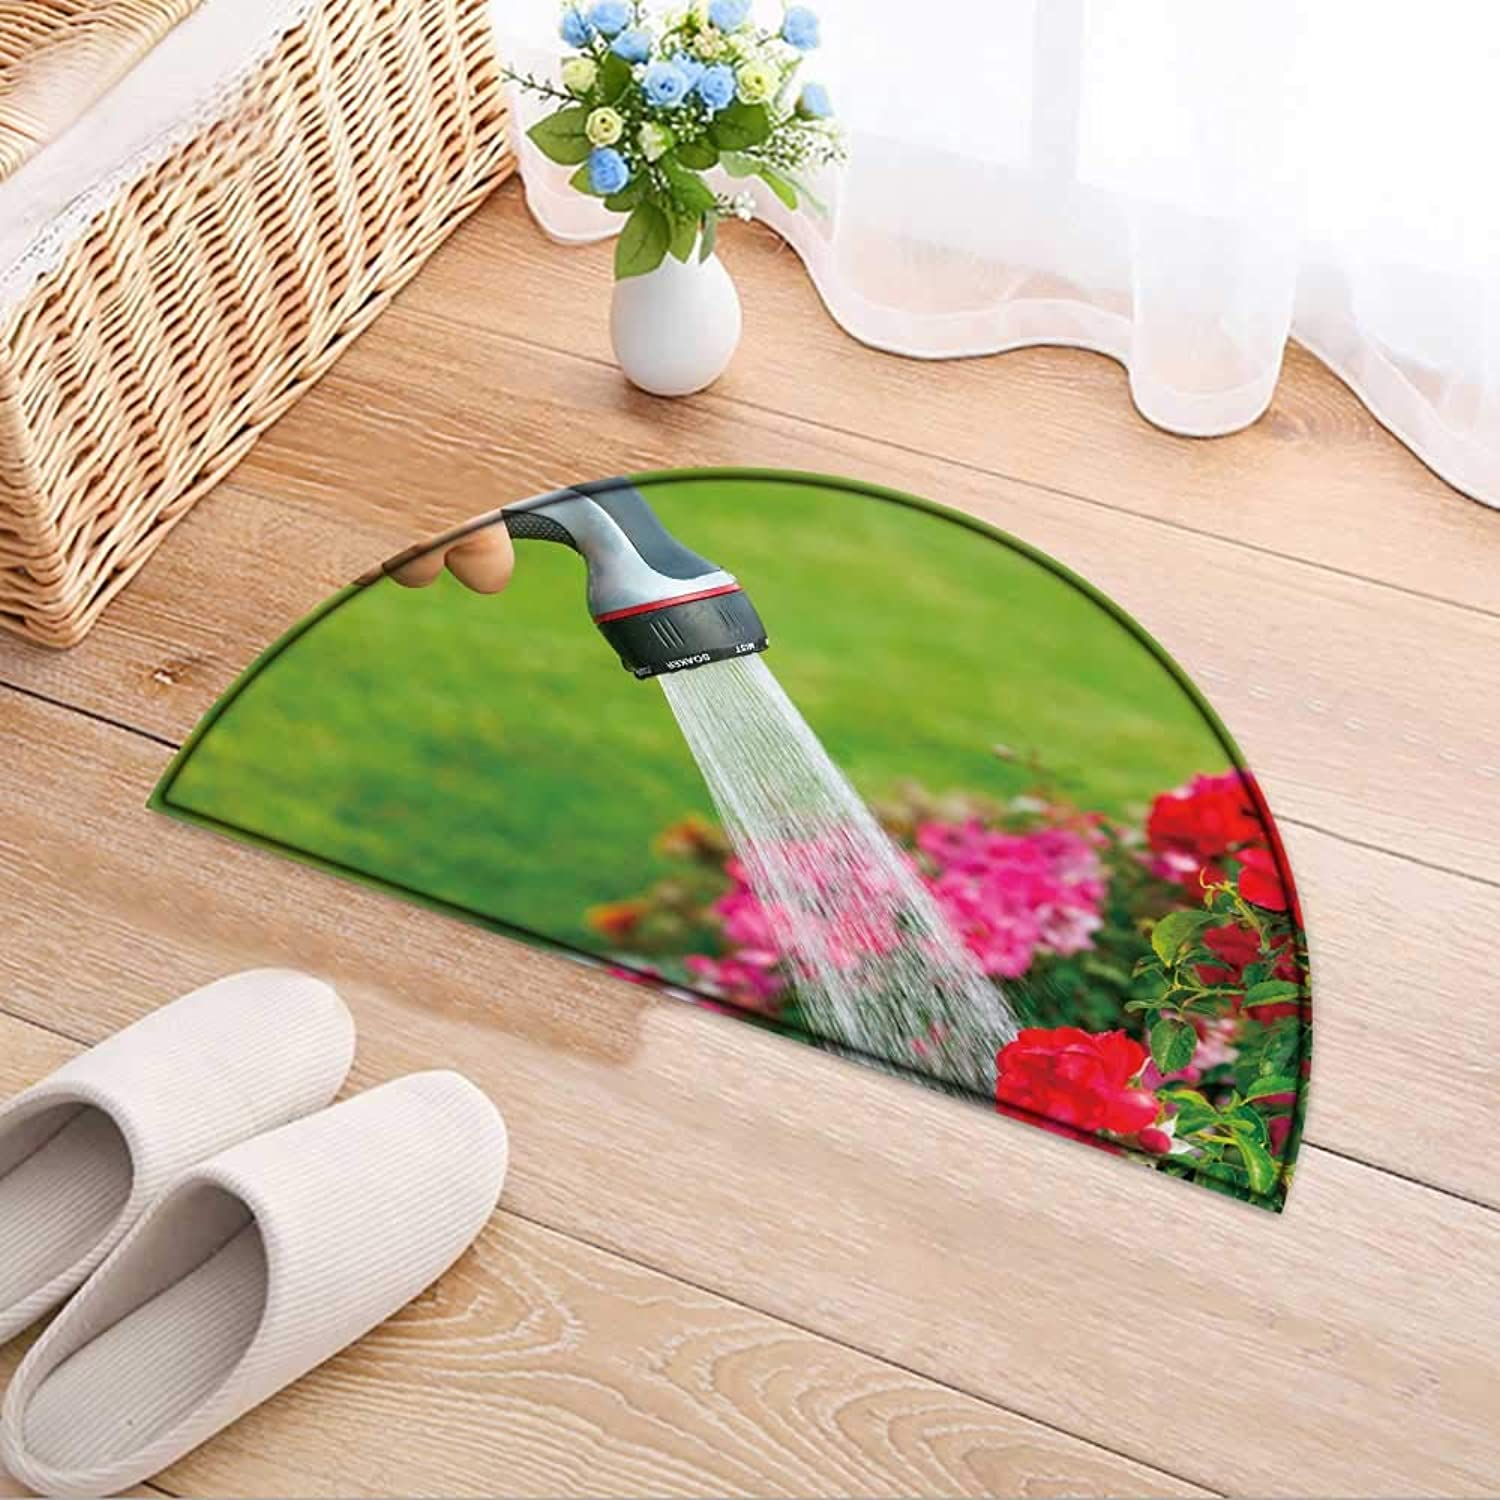 Entrance Hall Carpet Water Garden Flowers with Hose Non Slip Rug W47 x H32 INCH